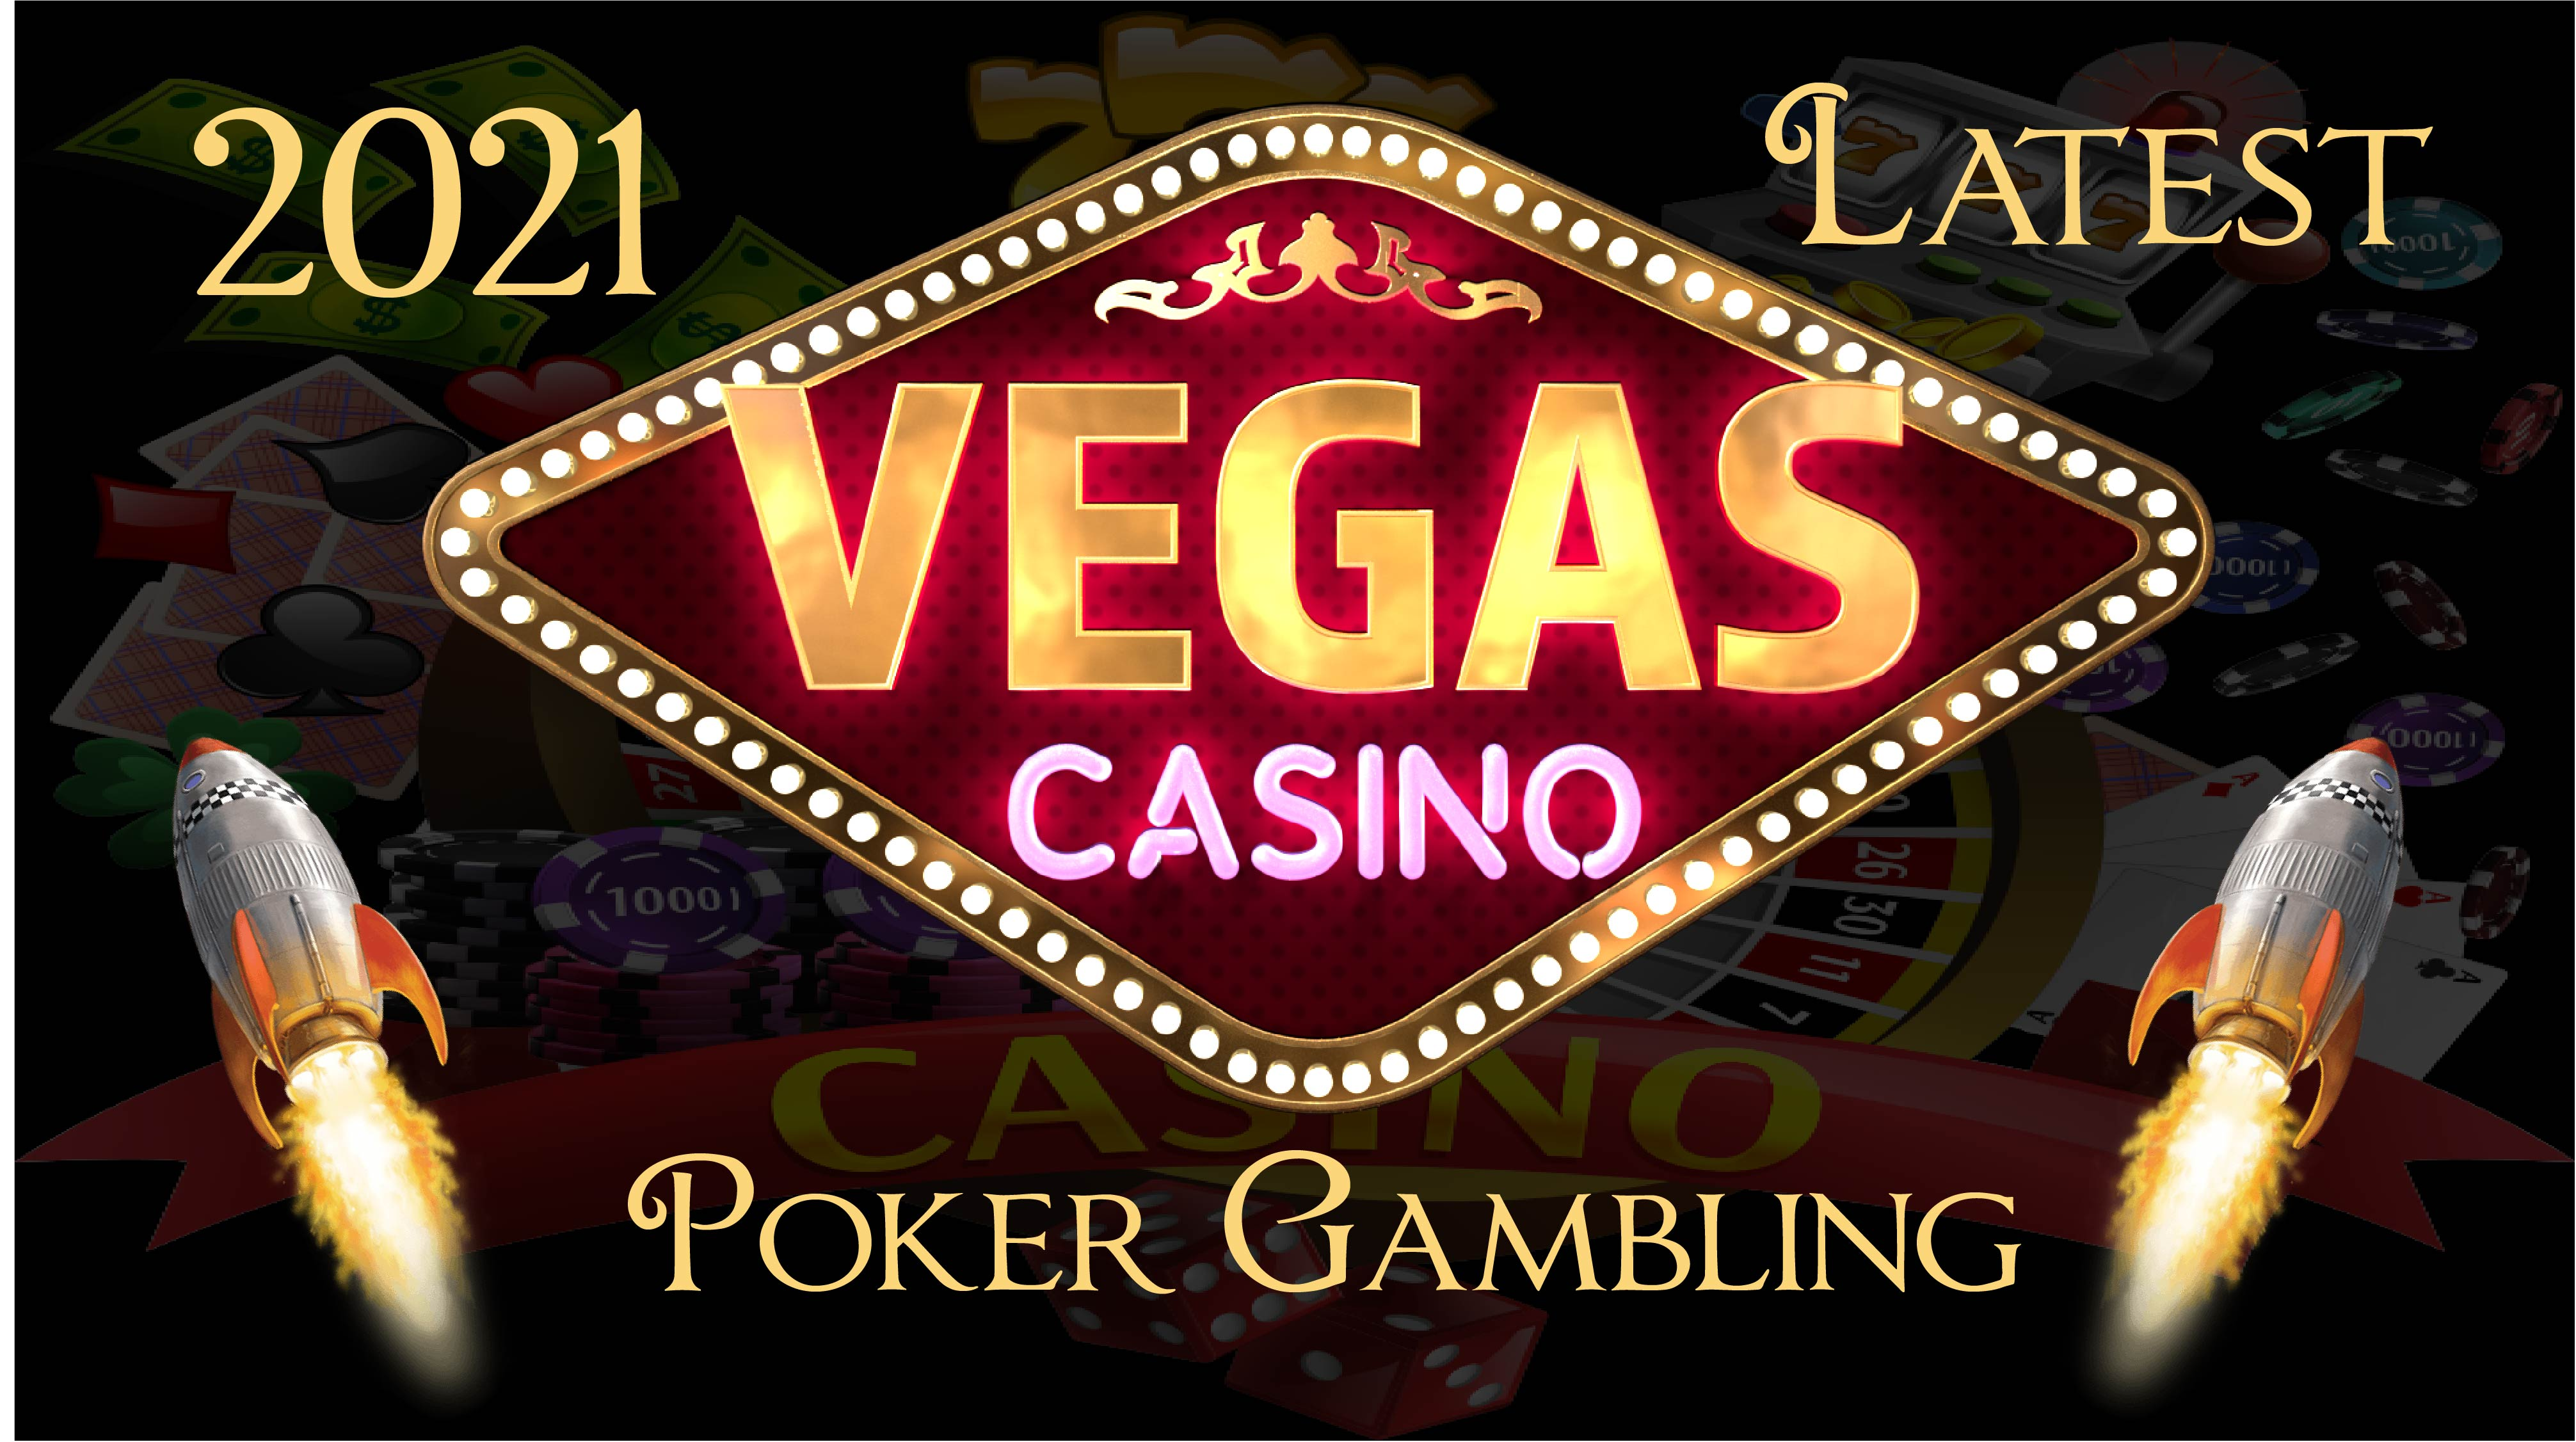 1450+ High Quality Casino,  Poker and Gambling PBN Backlinks